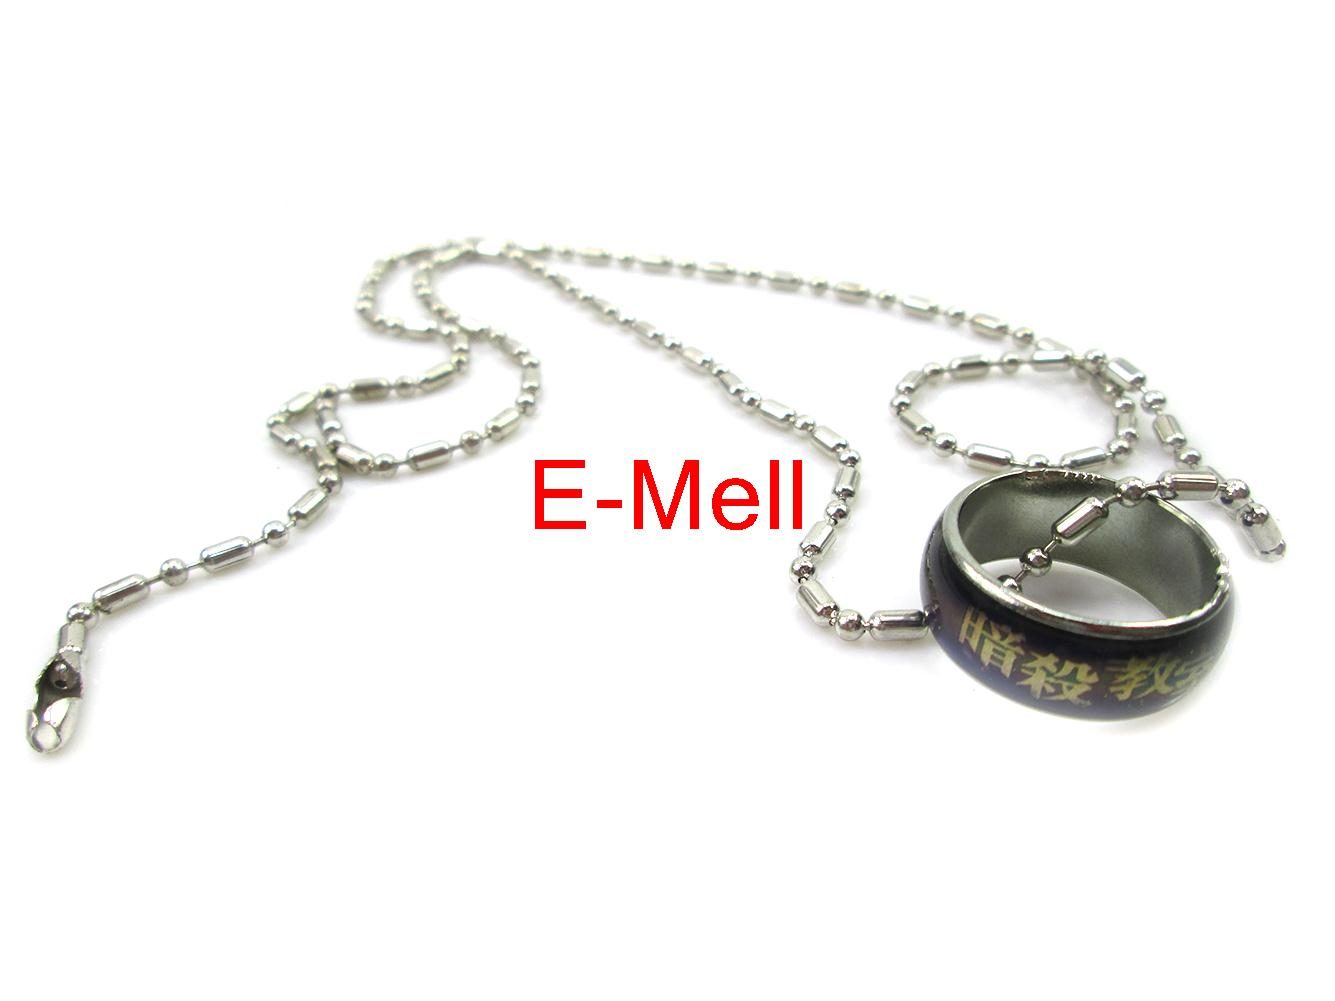 Cosplay Assassination Classroom Cartoon Logo Necklet Change color finger necklace(China (Mainland))